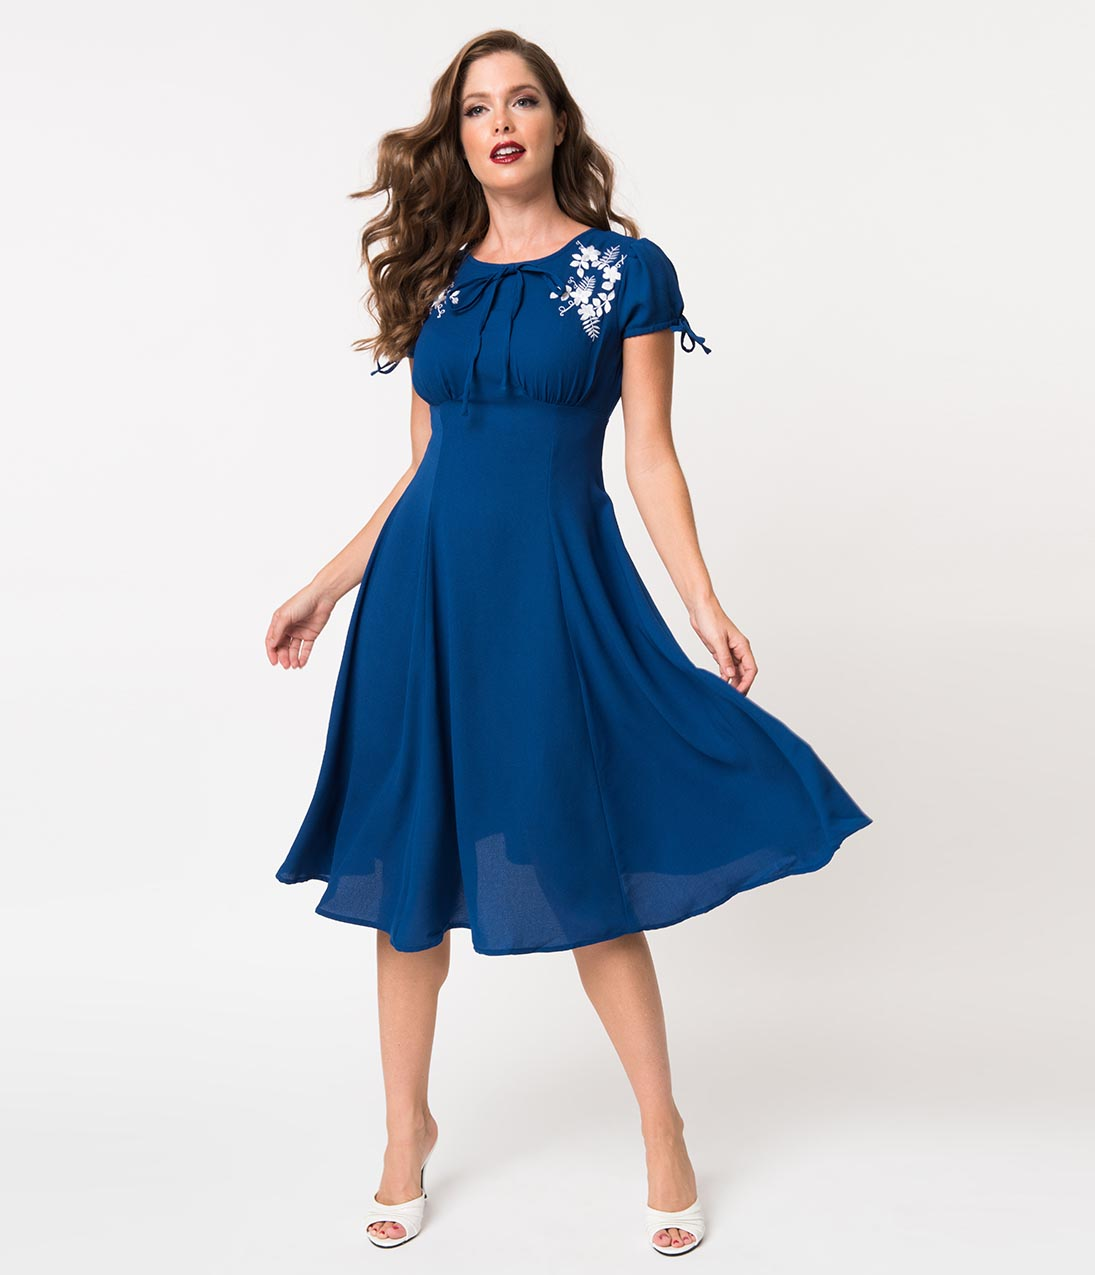 Swing Dance Clothing You Can Dance In 1940S Style Royal Blue Crepe  White Embroidered Floral Ava Swing Dress $78.00 AT vintagedancer.com